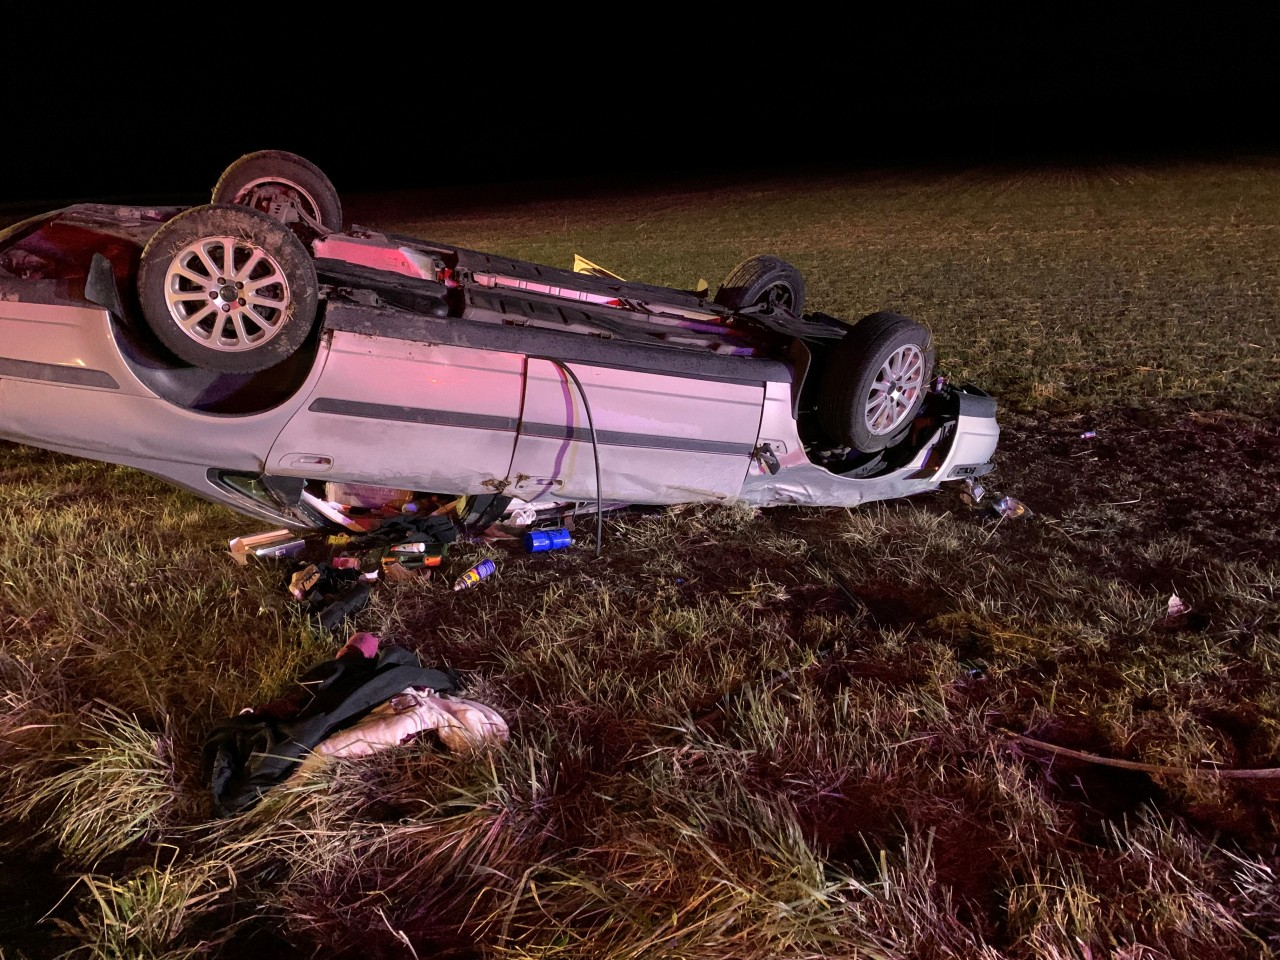 Driver suffers fractured spine after DeKalb County rollover crash